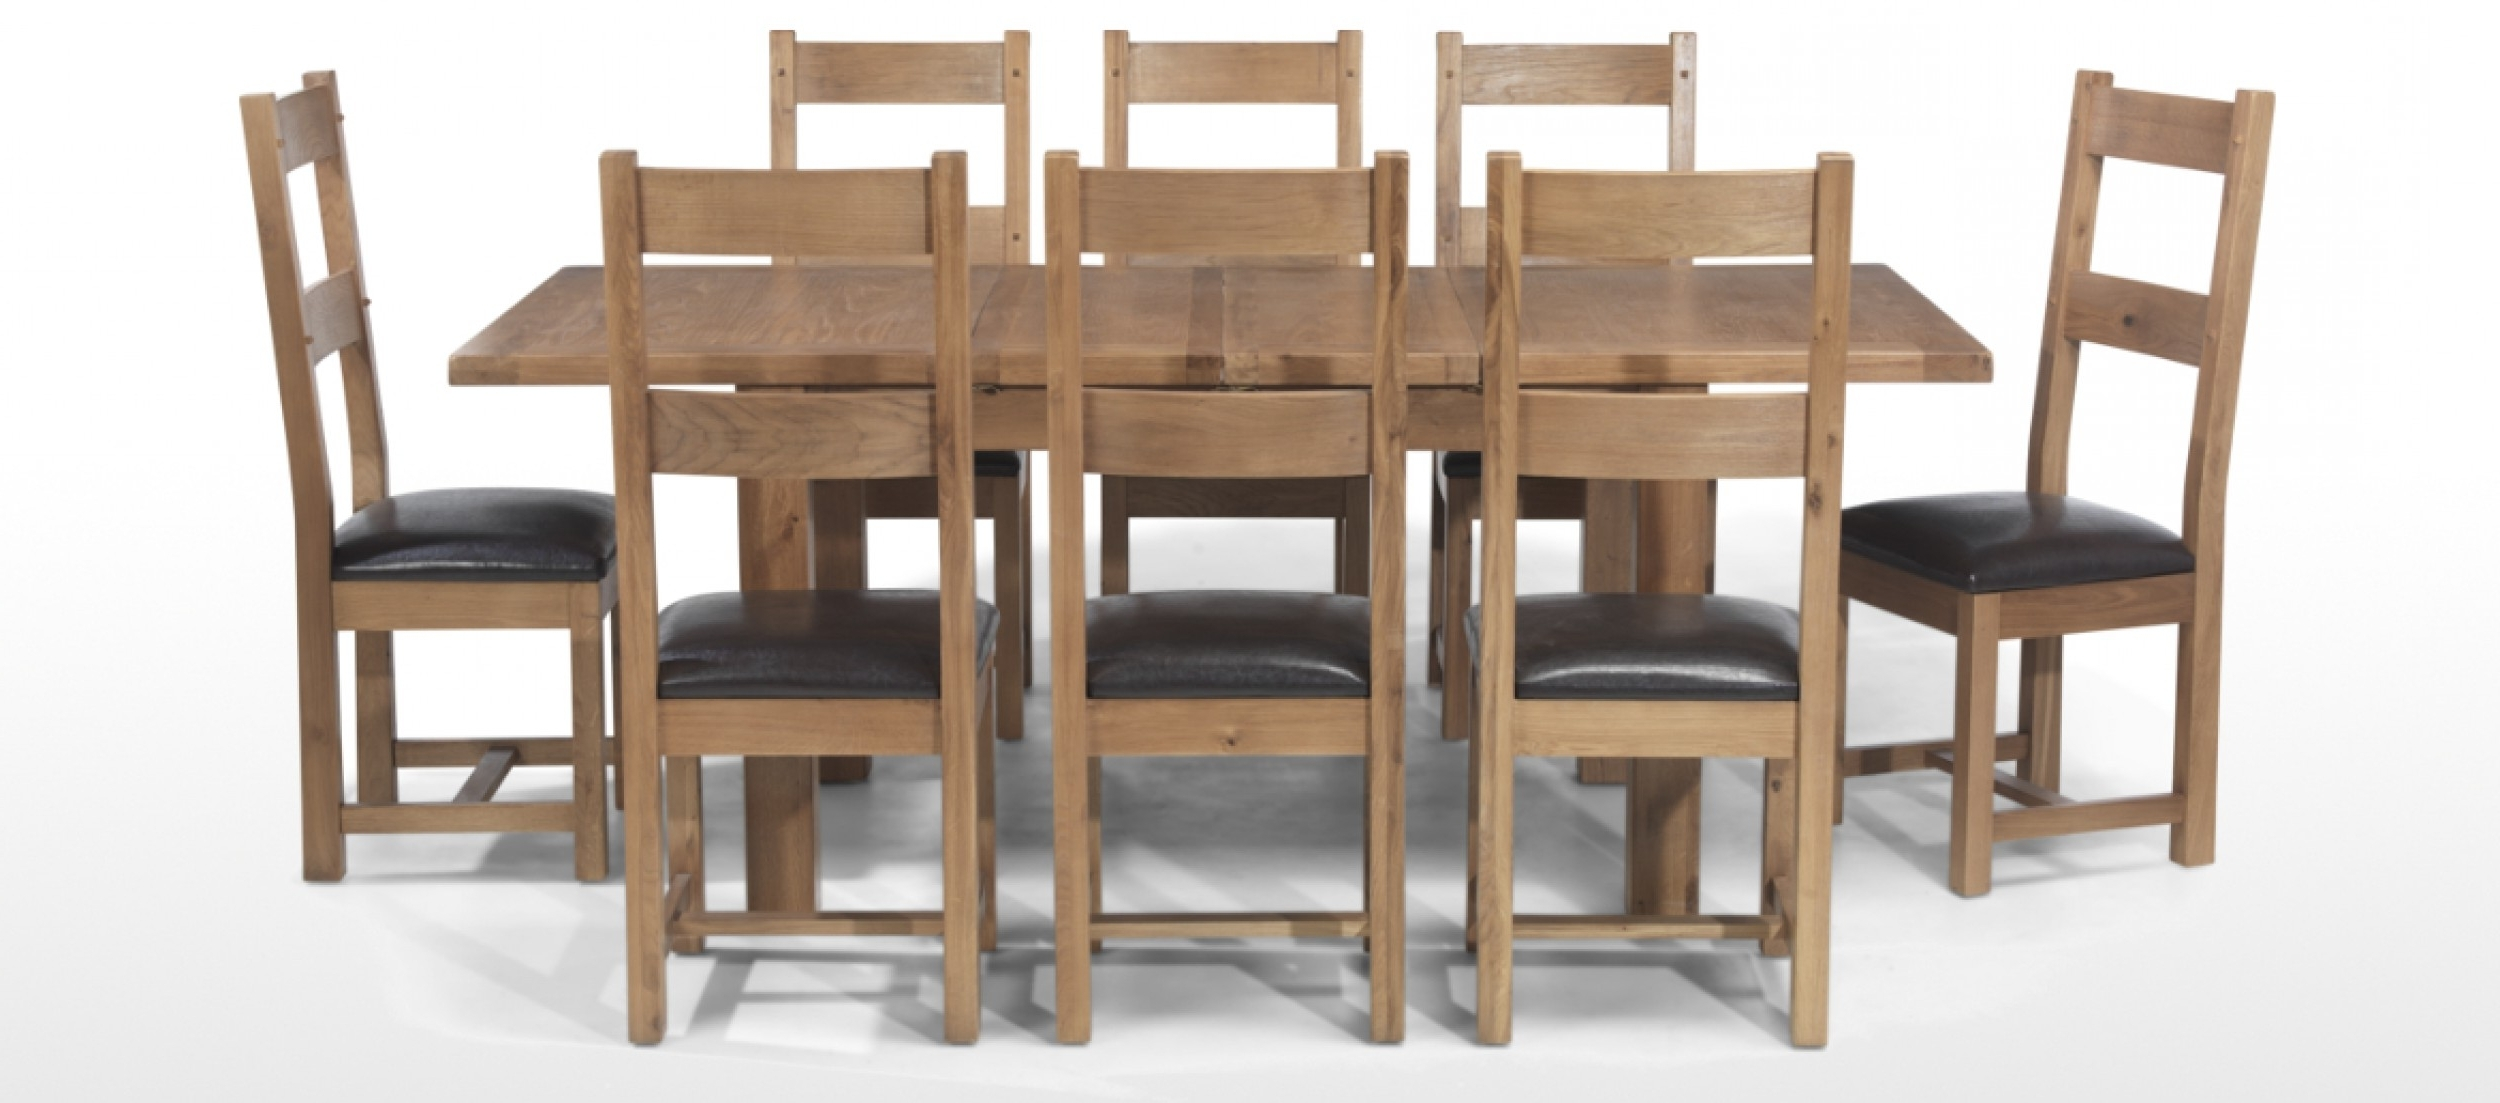 Quercus For Most Recent Oak Dining Tables 8 Chairs (View 3 of 25)